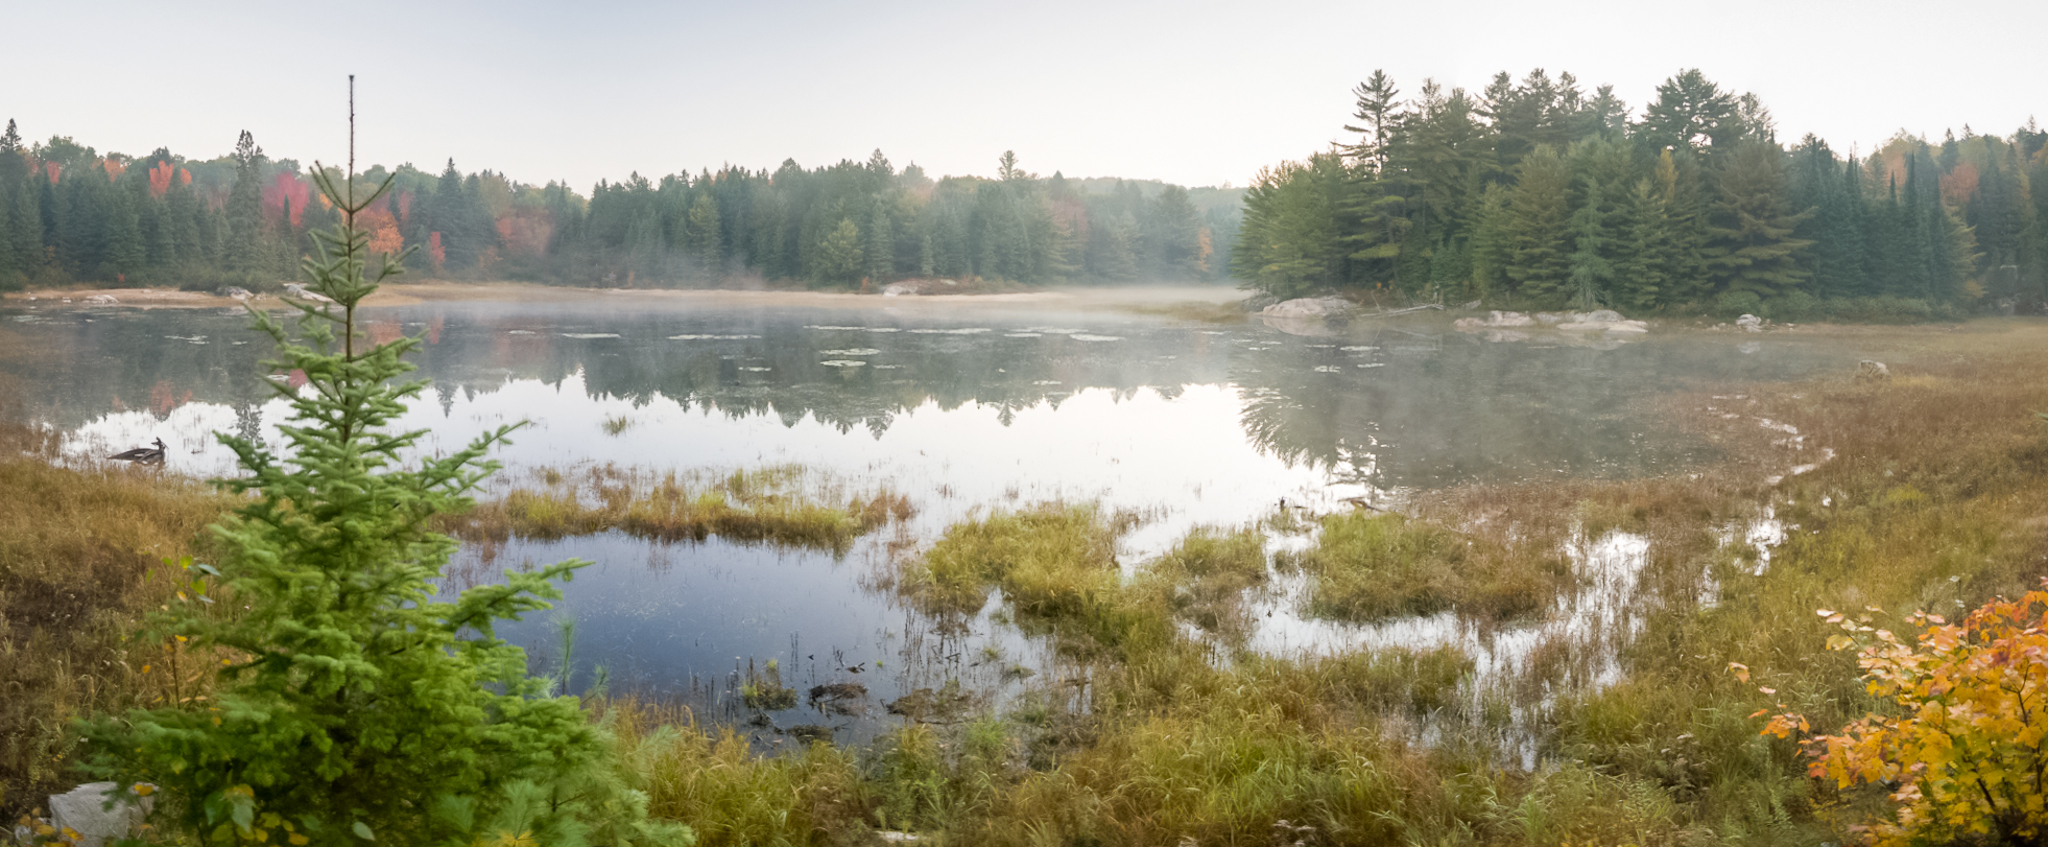 Early Morning Pond (1/100s, f/3.5, ISO800 - 9 shot panorama)